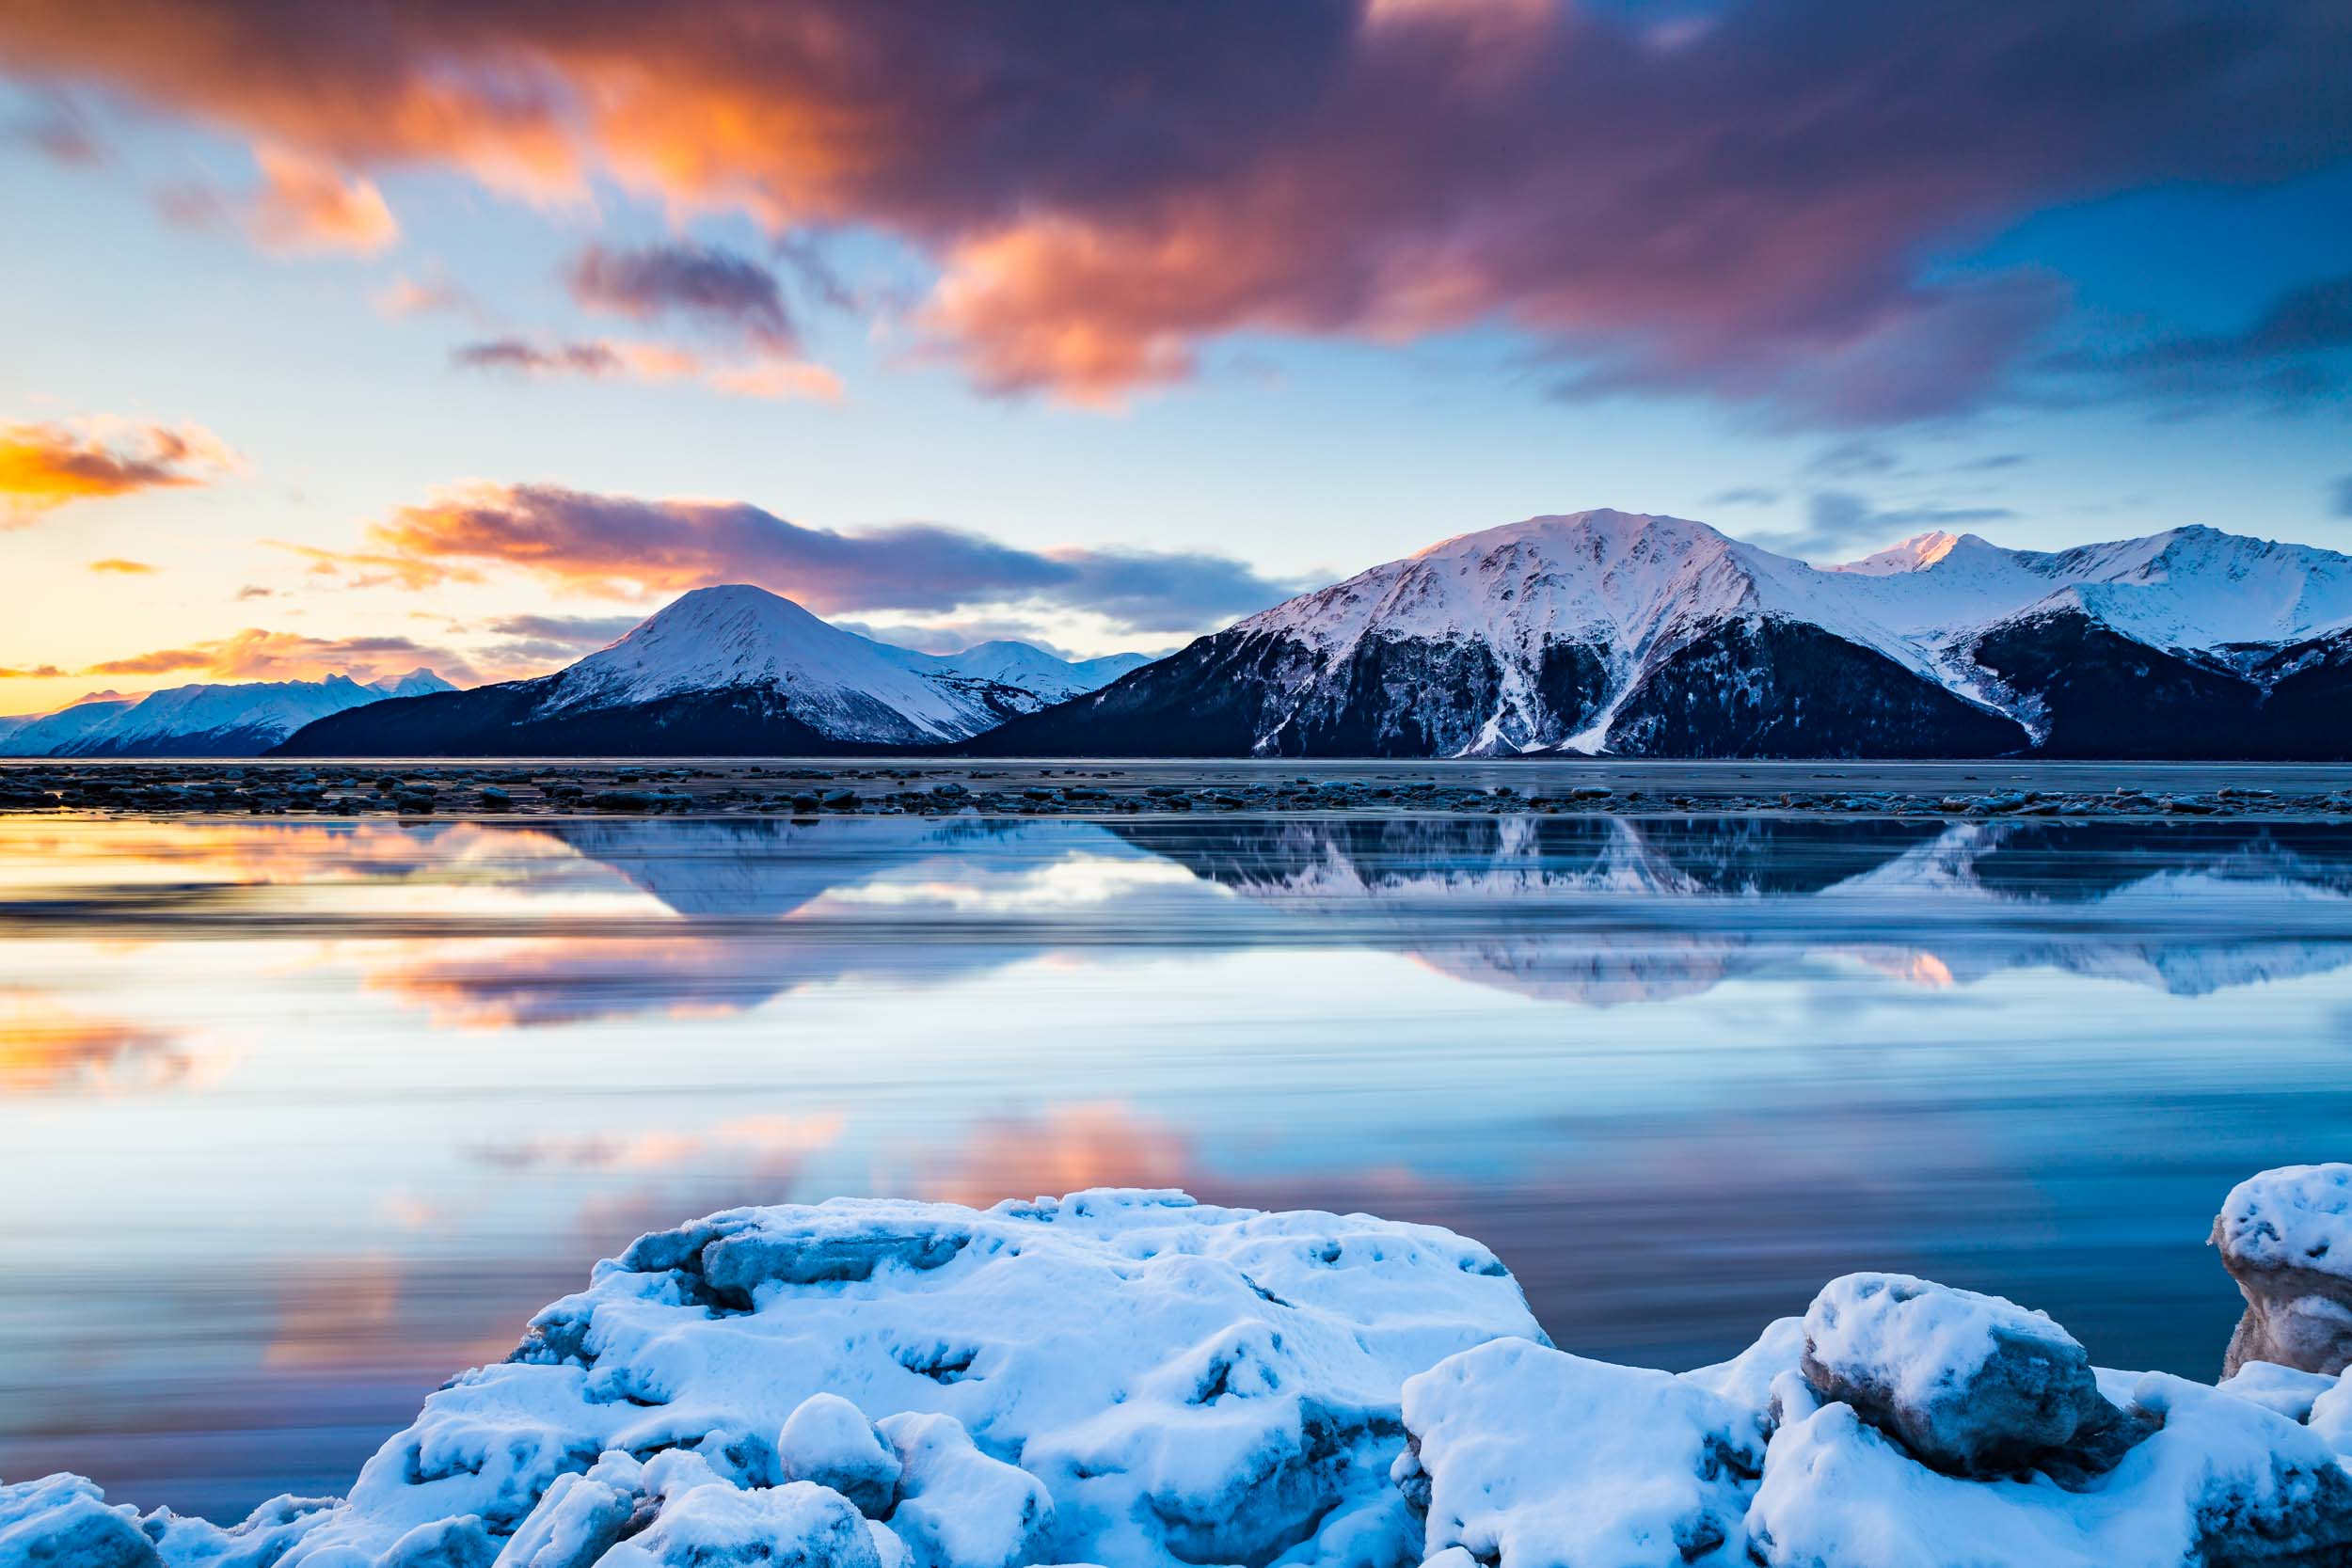 Turnagain Arm Winter Landscape Alaska Tourism Photographer